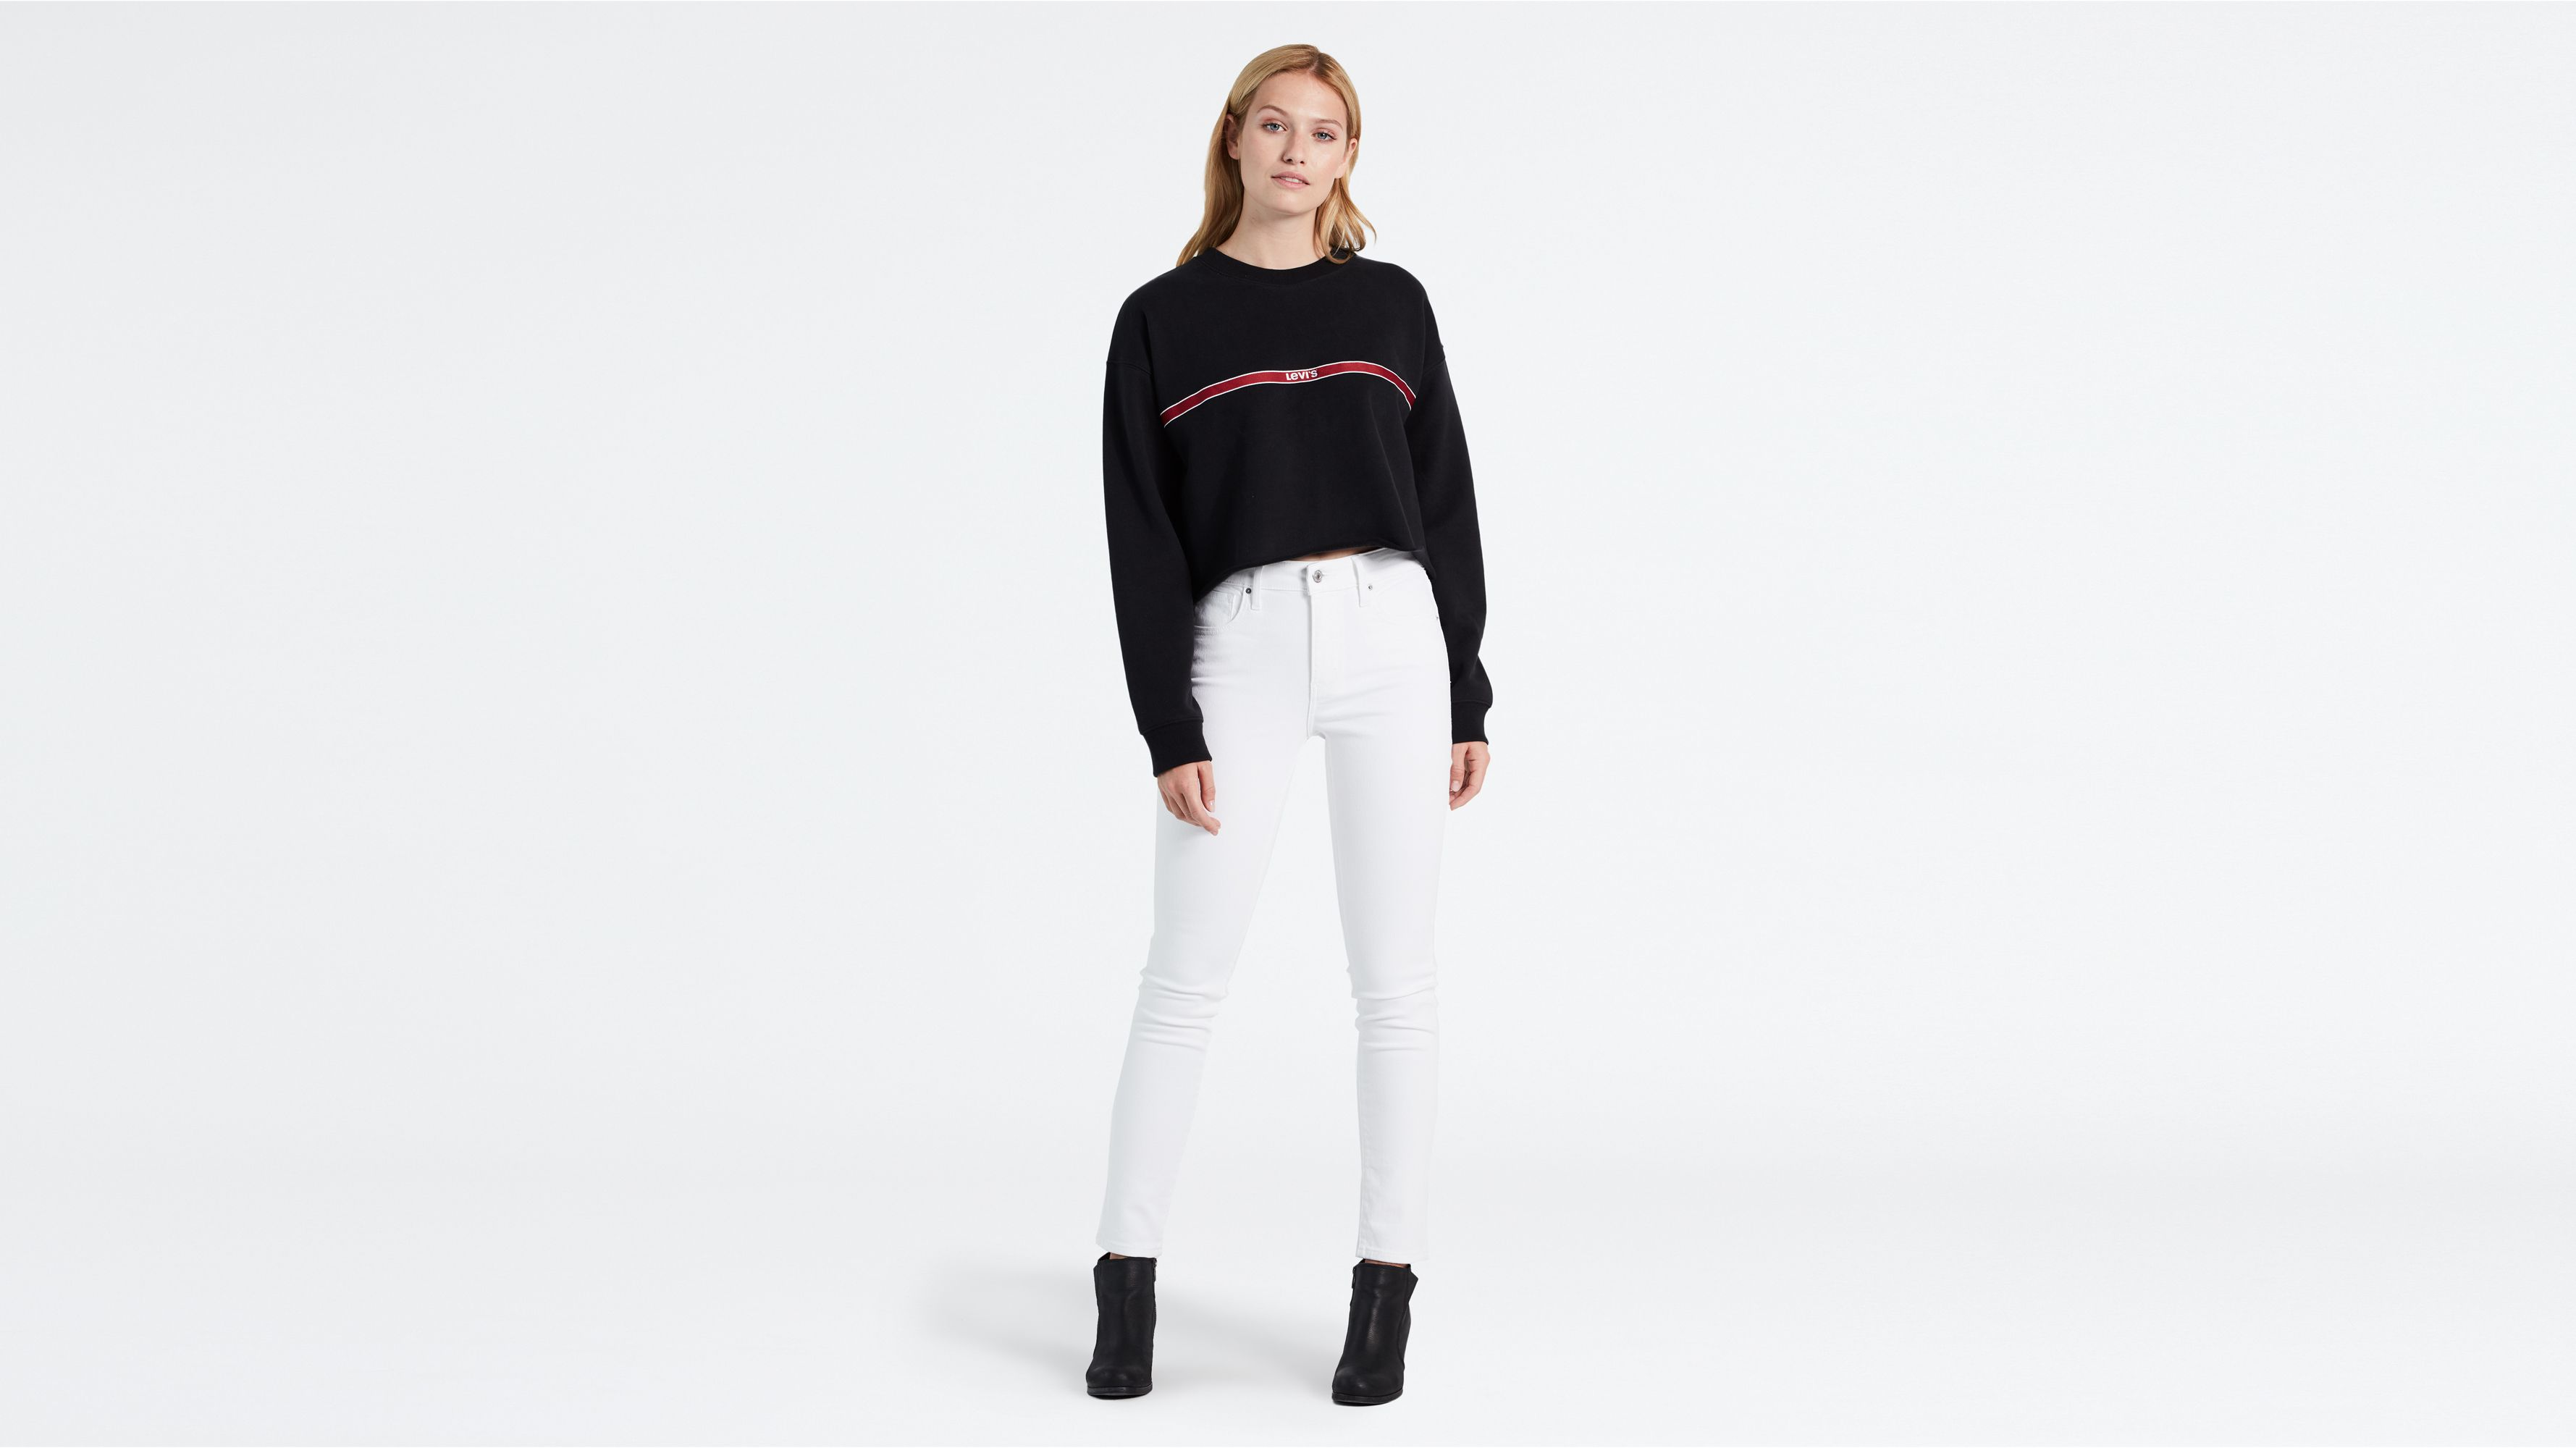 721™ High Waisted Skinny Jeans Helle Waschung Early Riser from Levi's on 21 Buttons